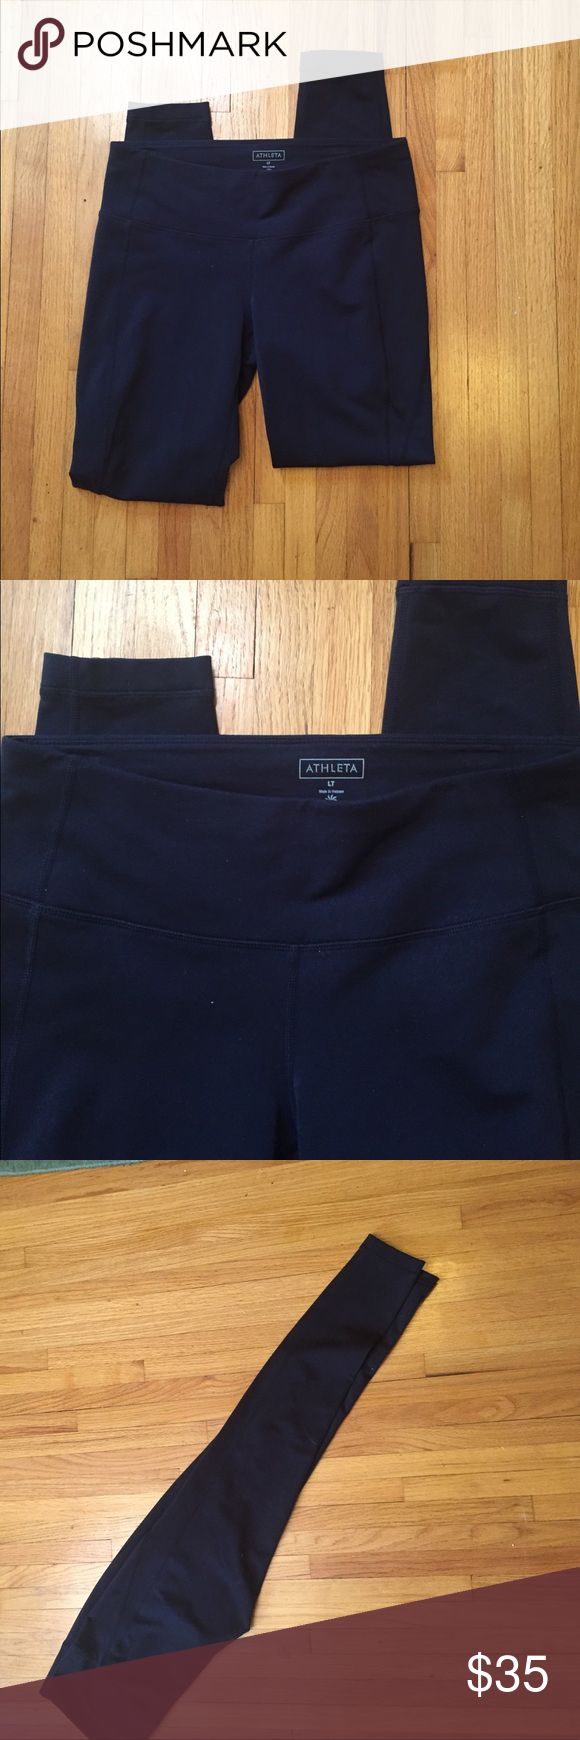 """ATHLETA Black Size Large Tall (LT) Yoga Pants. ATHLETA Black Size Large Tall (LT) Yoga Pants. Body is 85% Nylon and 15% Spandex with a 100% Polyester gusset and 100% Nylon pocket lining. Worn once. They fit great I just haven't worn them. Like new condition. Waist 30"""", Hips 32"""", Inseam 24"""", Length from Waist to Bottom Hem 37"""". Waist is thicker, please see photos. No trades. No PayPal. Athleta Pants Leggings"""